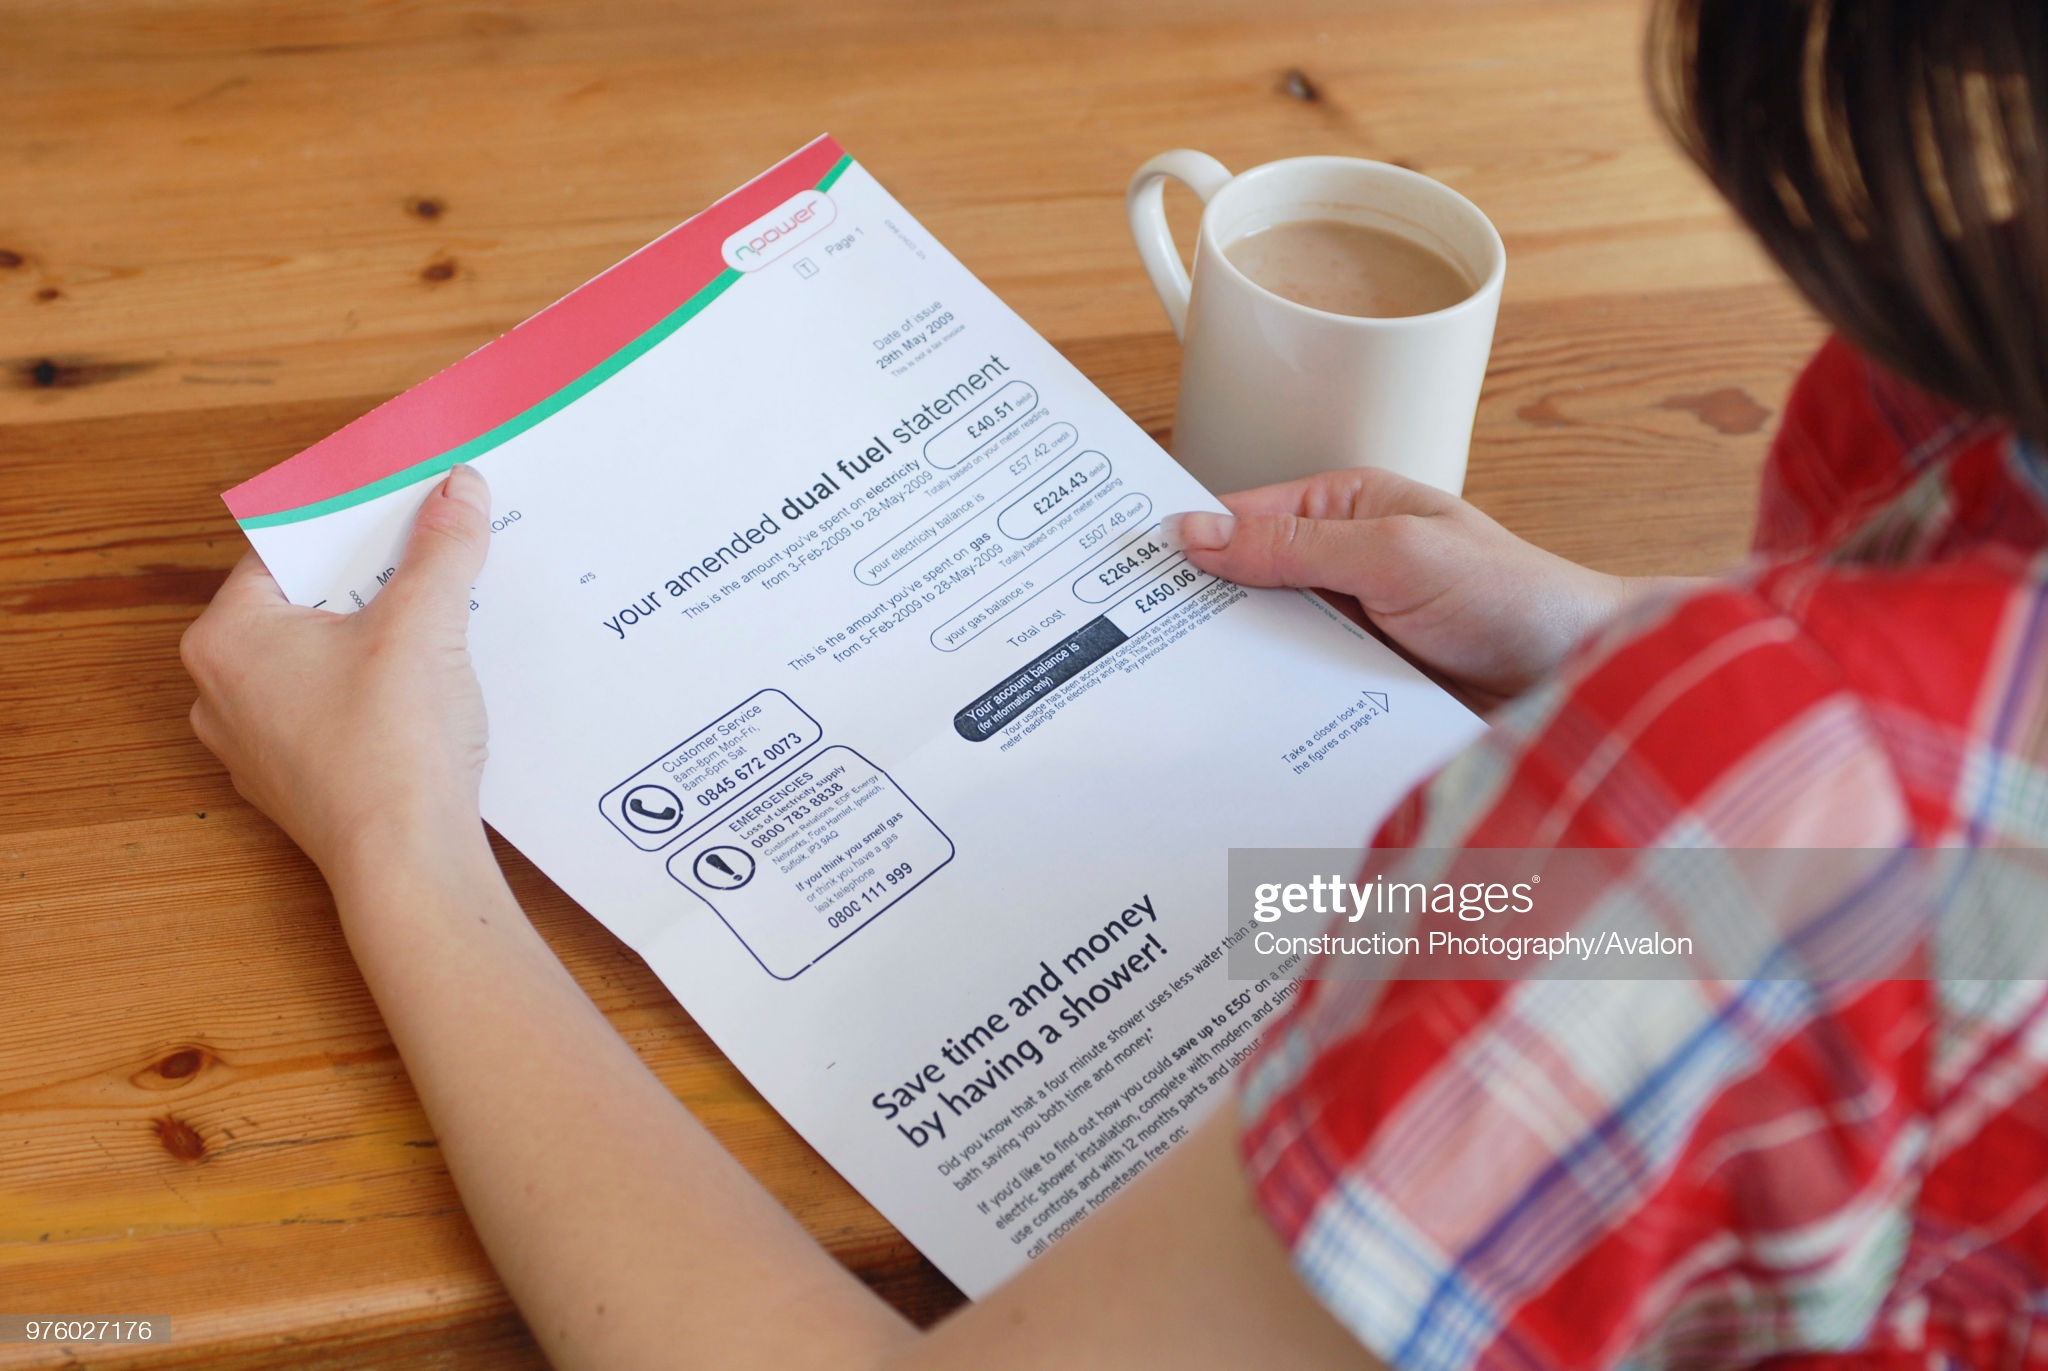 Young person looking at utility bill. (Photo by David Potter/Construction Photography/Avalon/Getty Images)